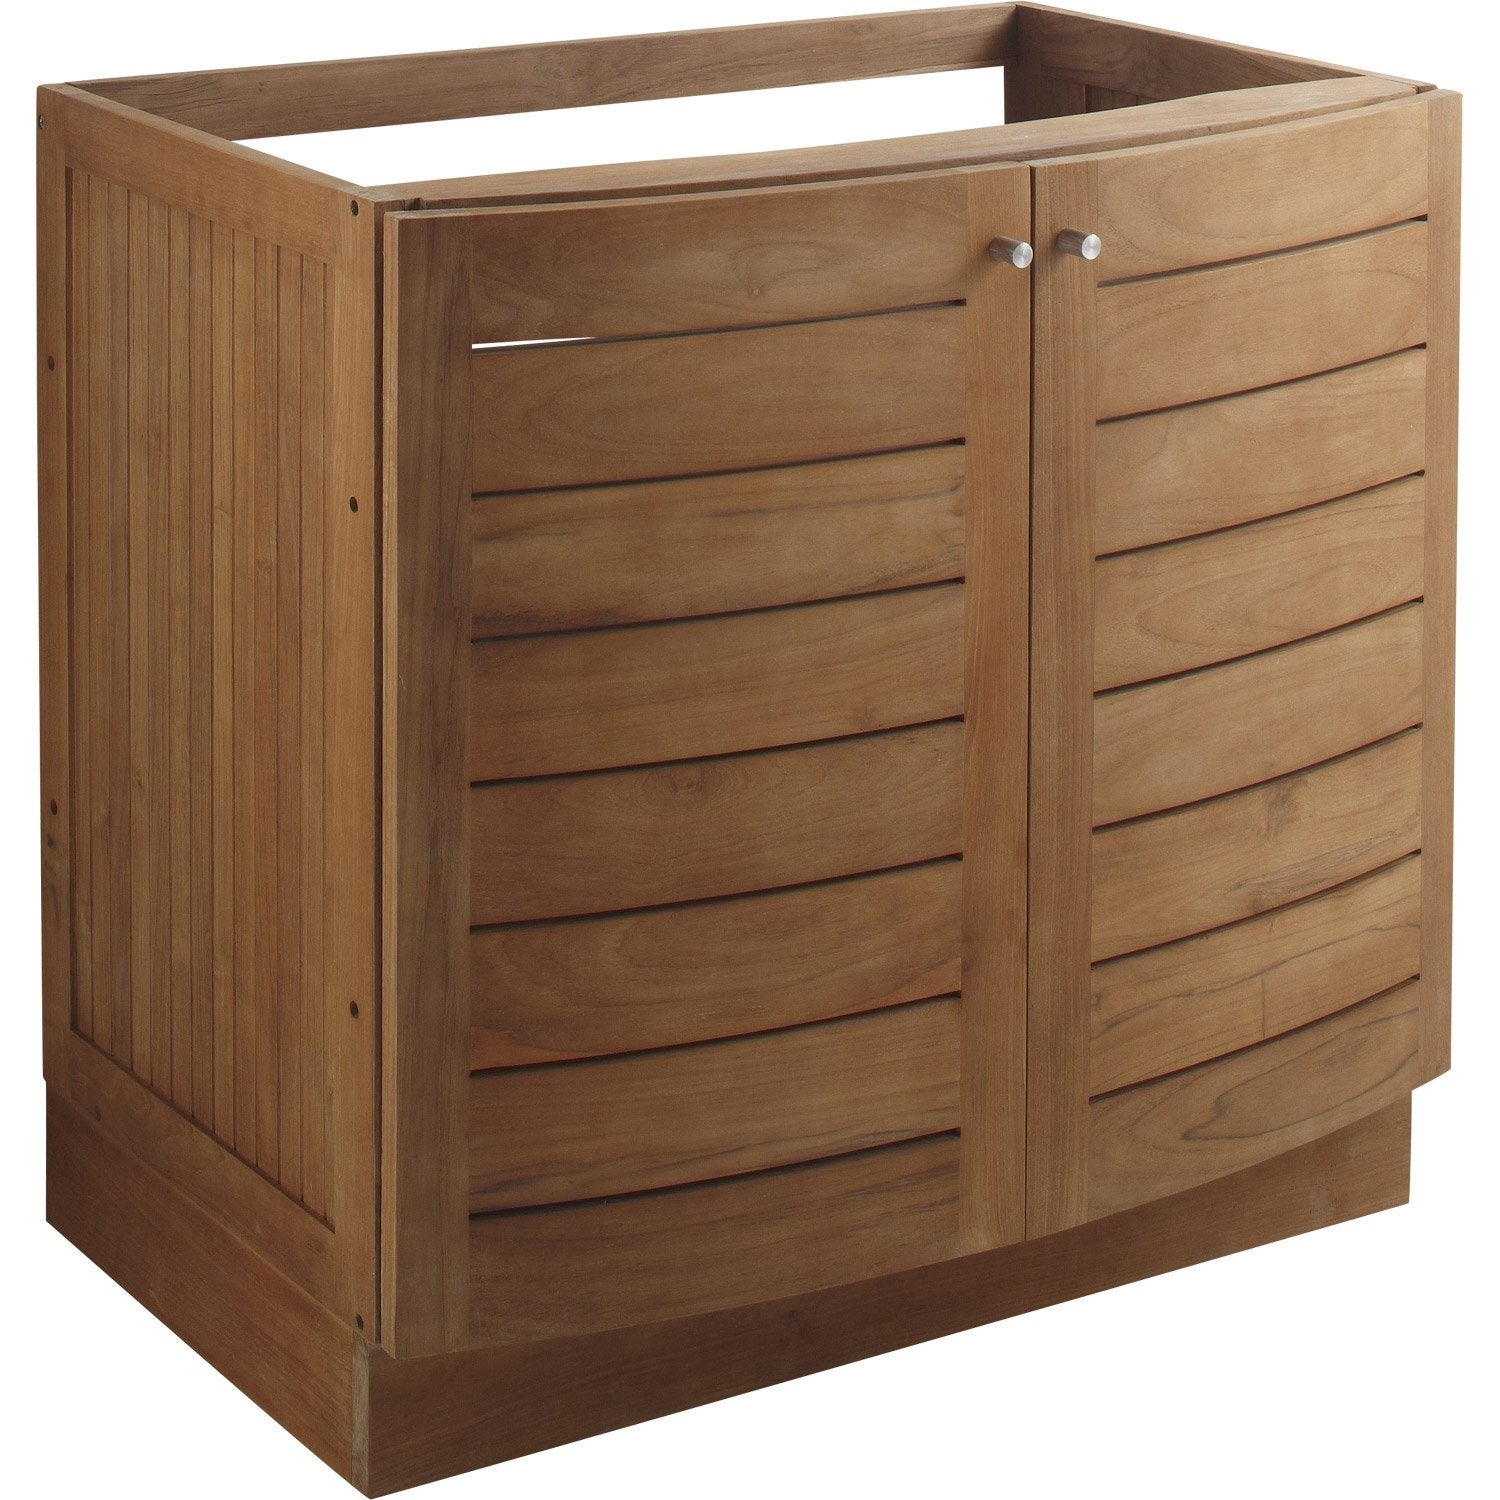 Meuble sous vasque en teck naturel wellington l85xh80xp56 - Meuble vasque leroy merlin ...